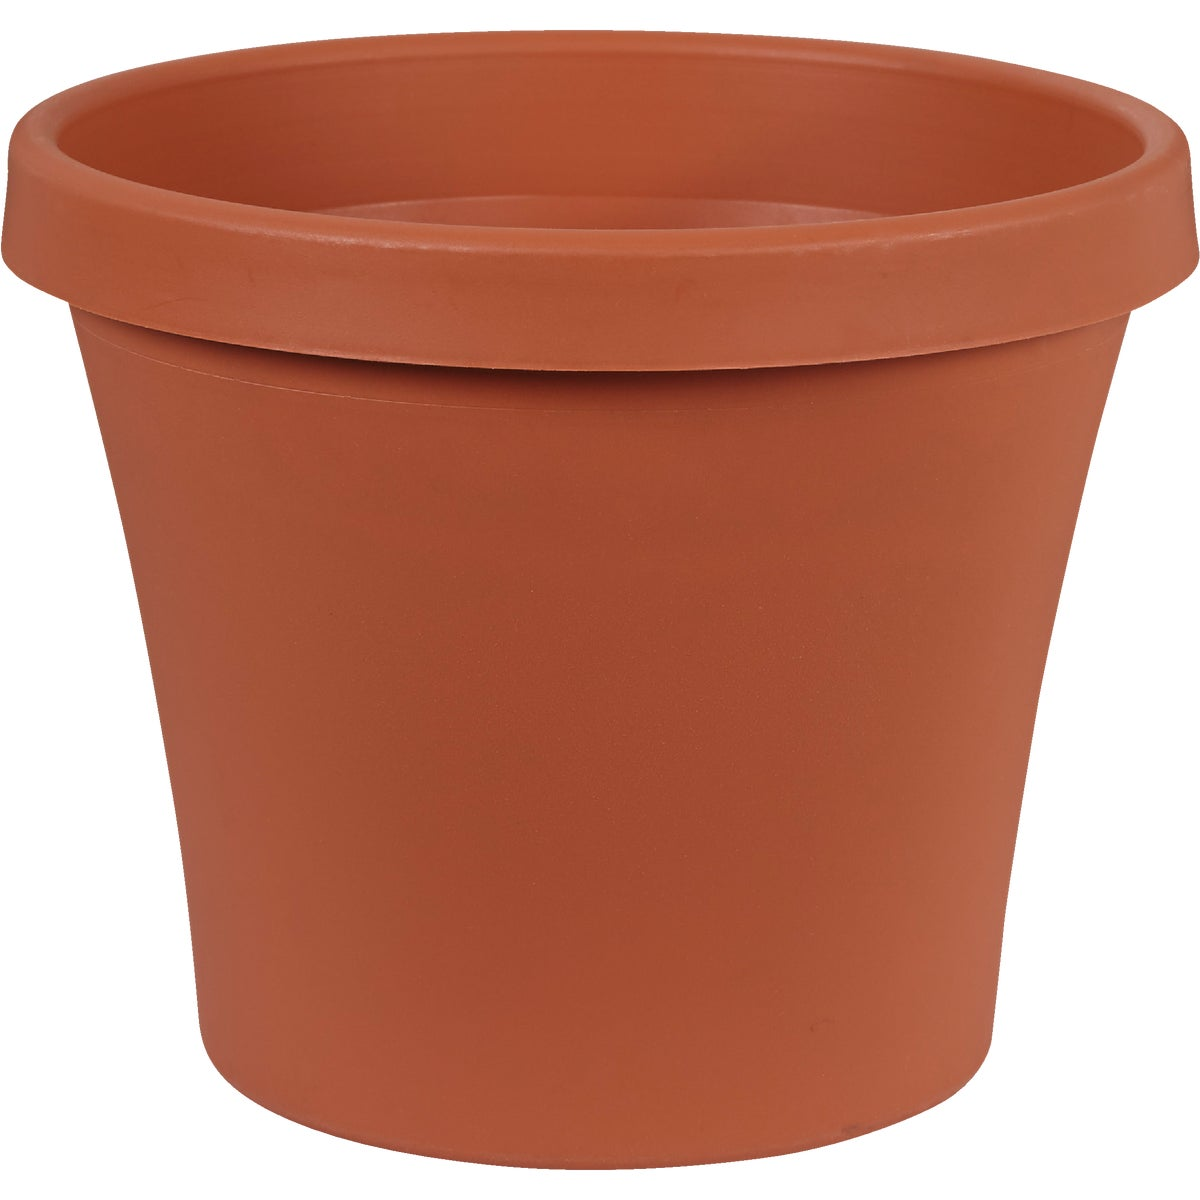 "16"" CLAY POLY POT"